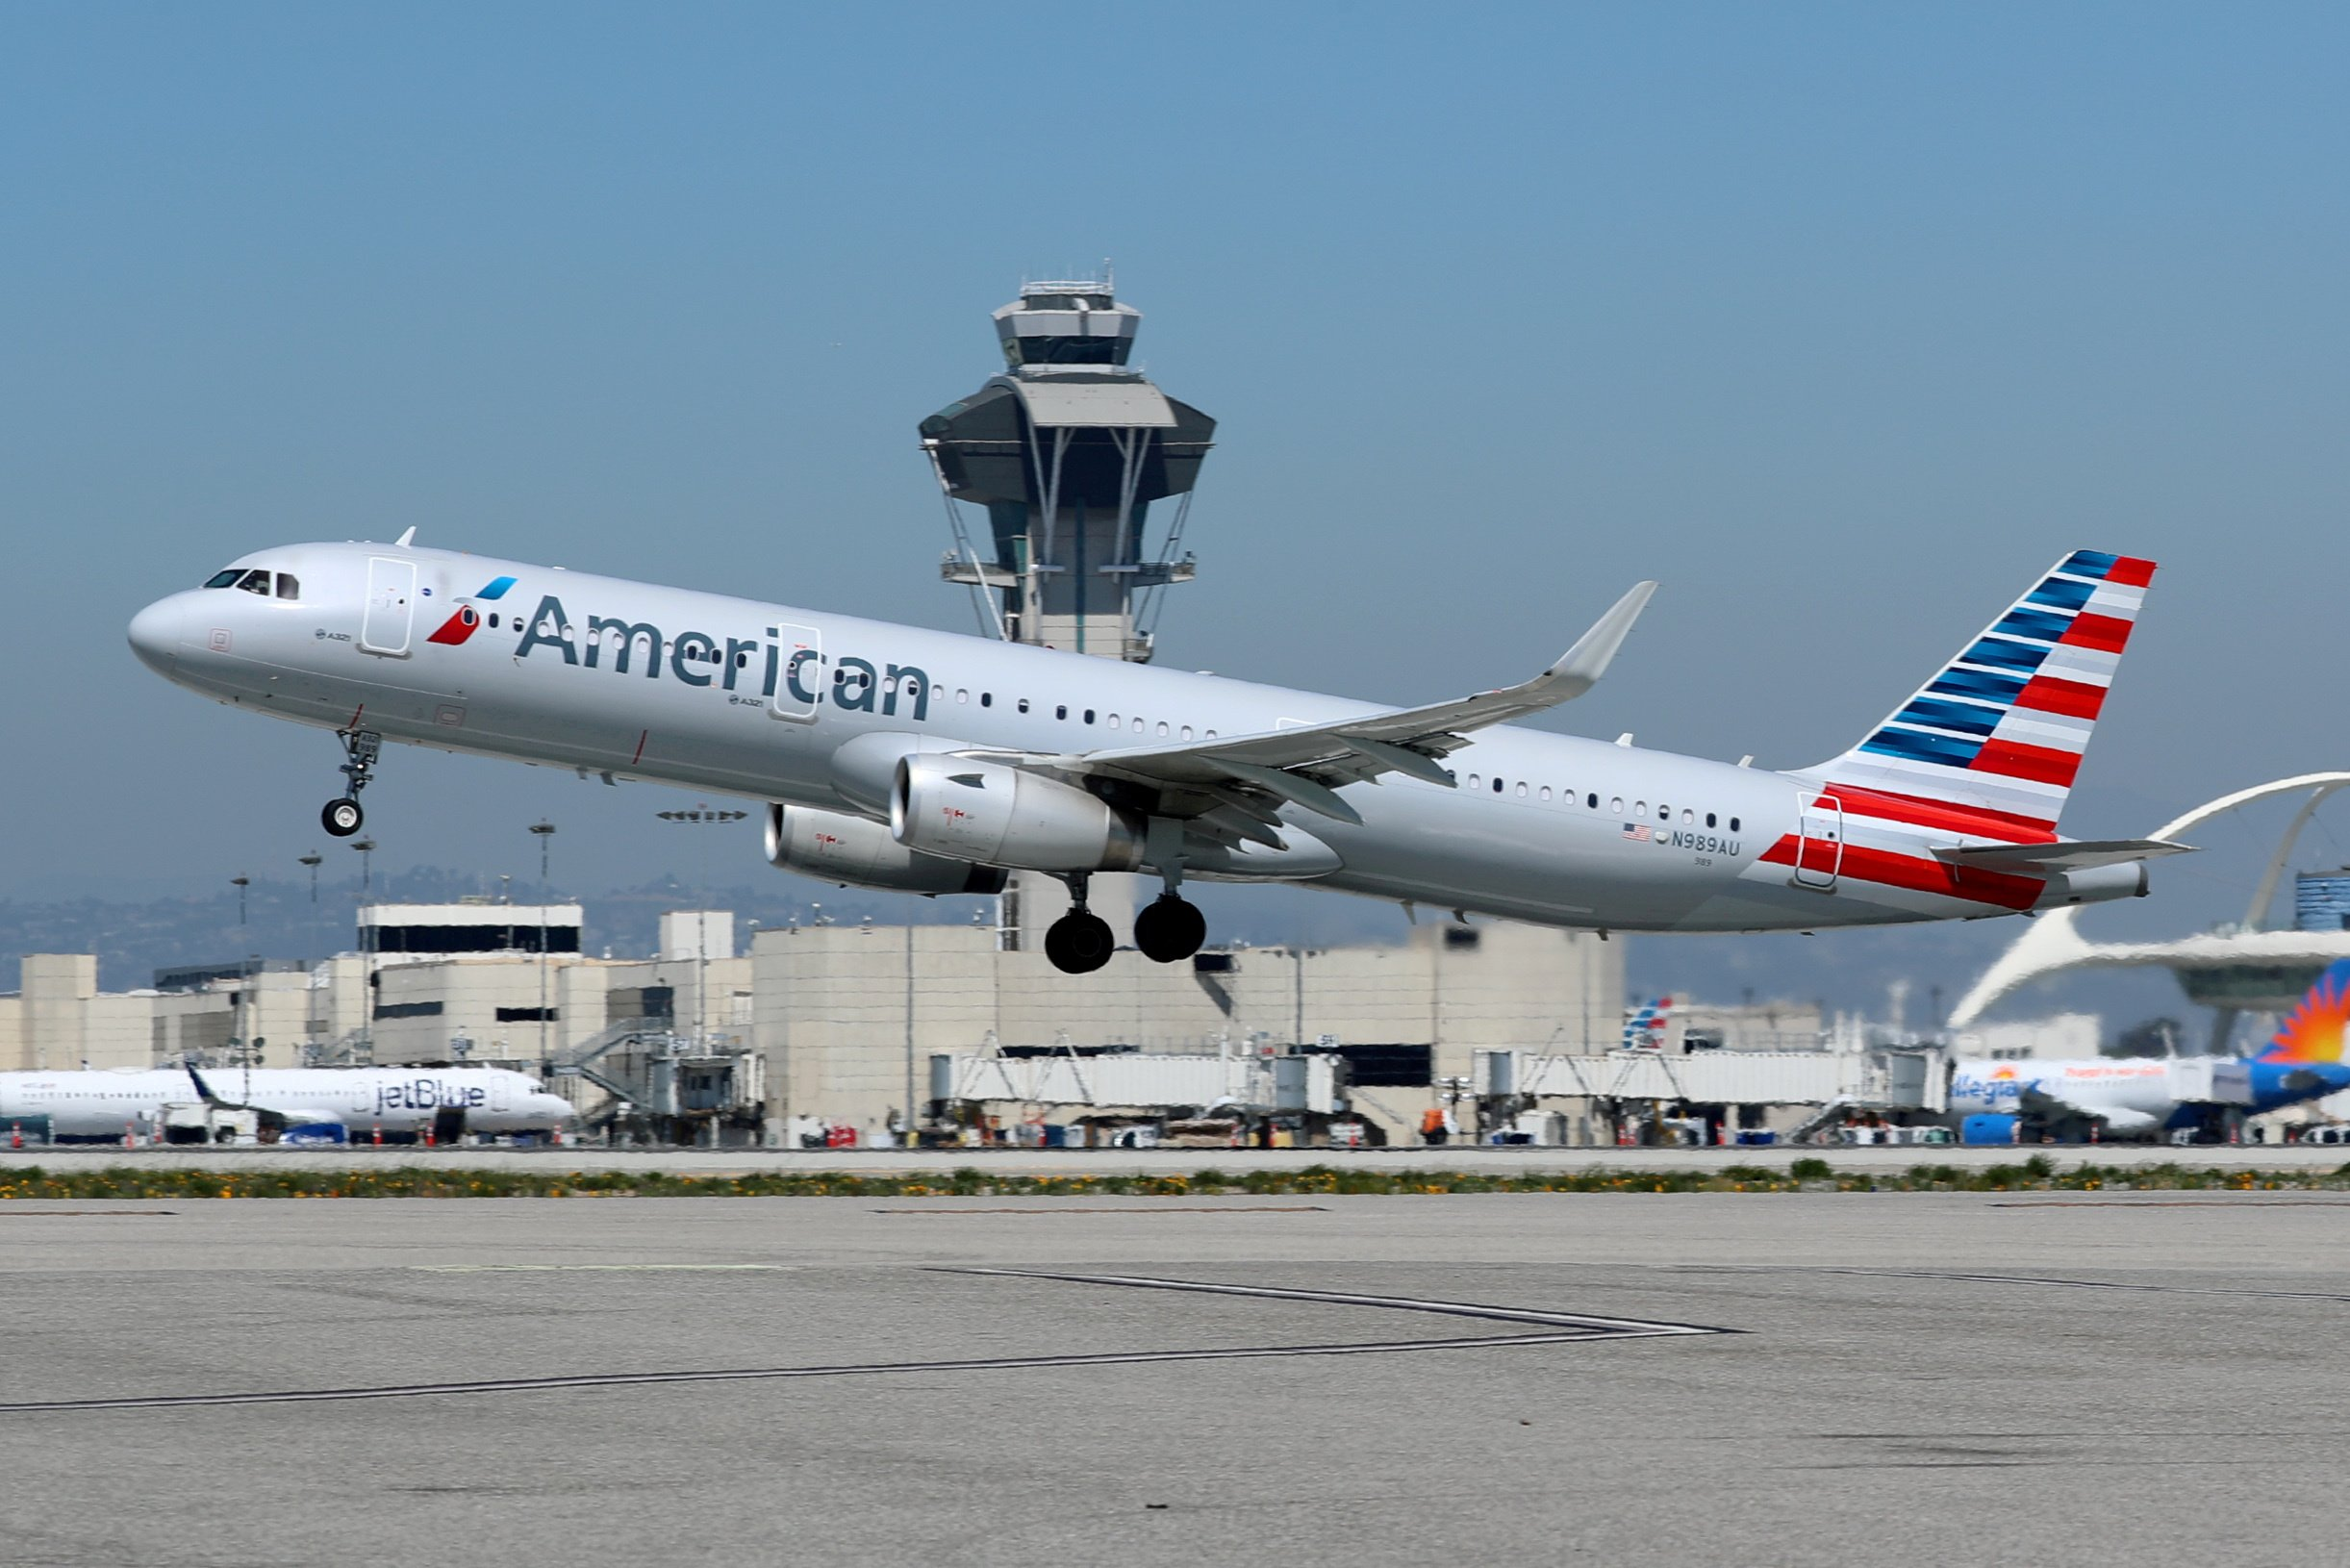 FILE PHOTO: An American Airlines Airbus A321-200 plane takes off from Los Angeles International airport (LAX) in Los Angeles, California, U.S. March 28, 2018. REUTERS/Mike Blake